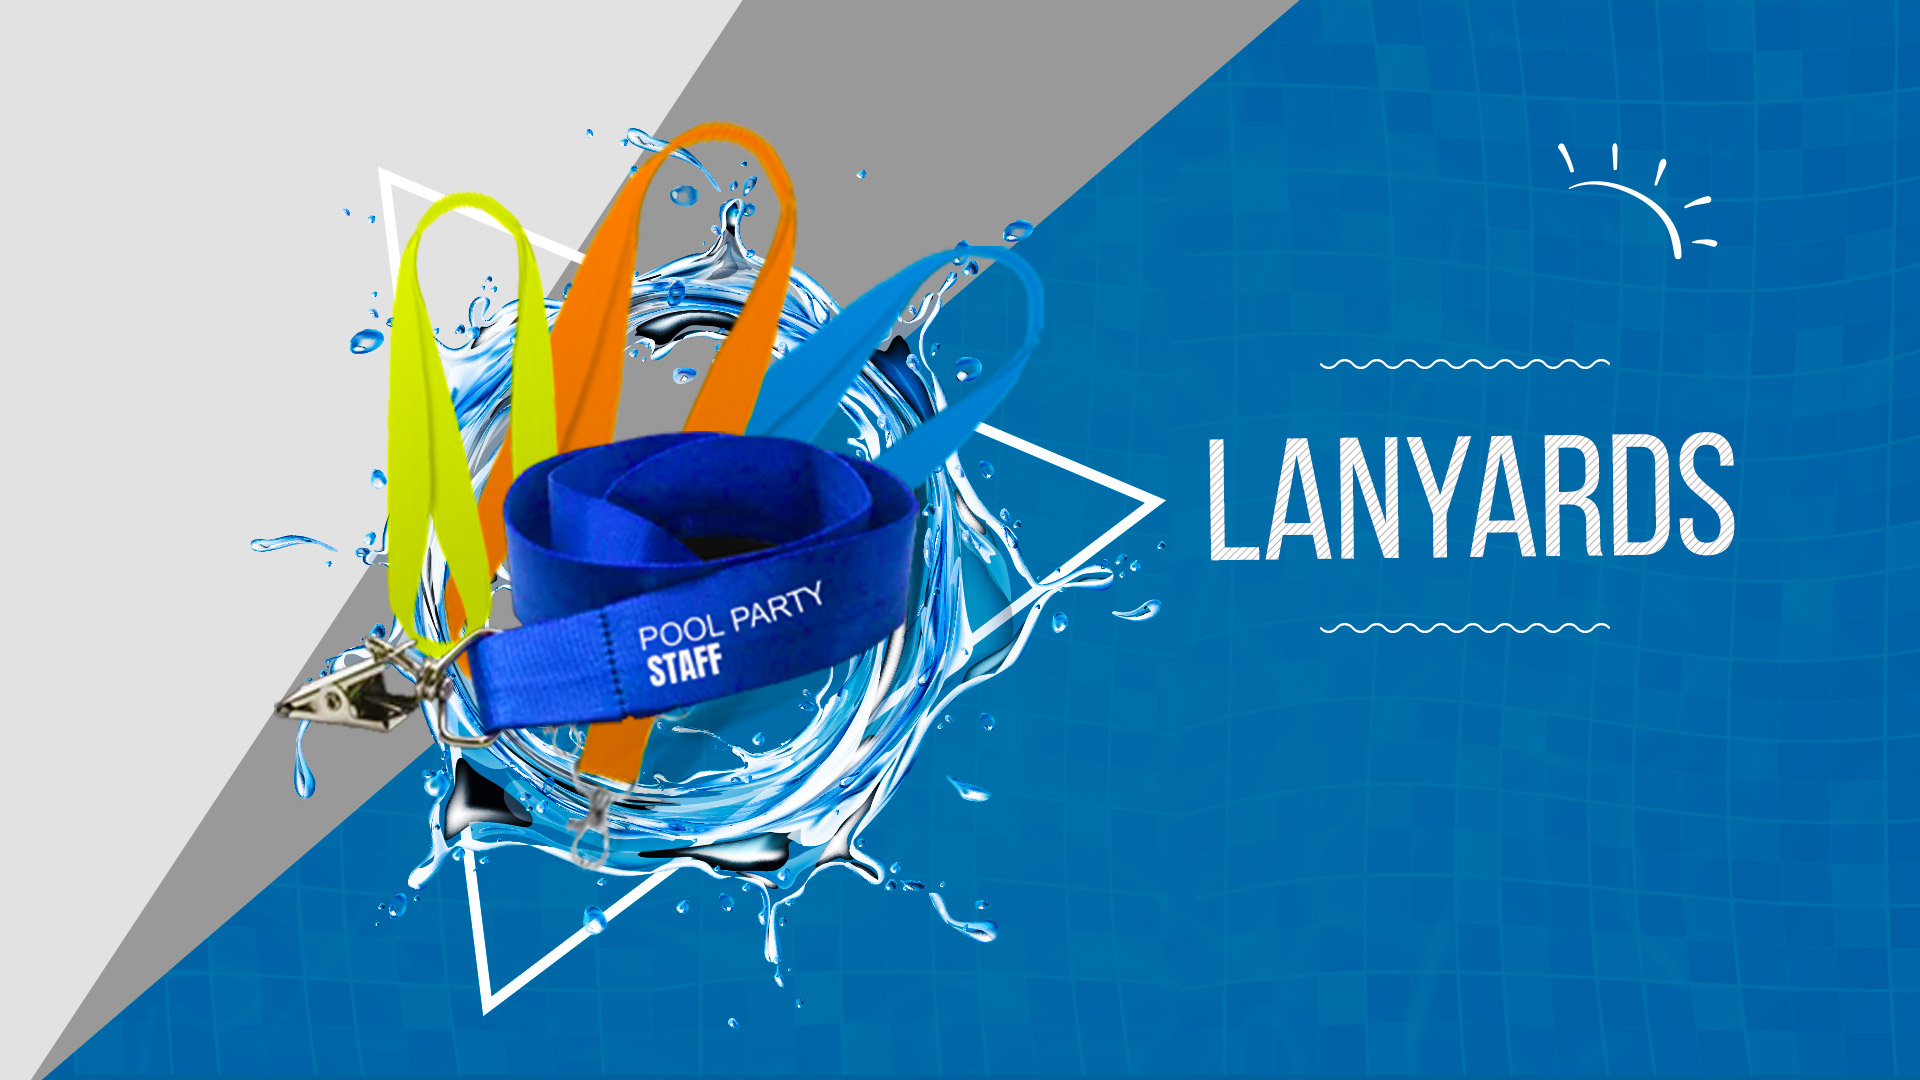 Pool_Party Lanyards - 24HourWristbands.com